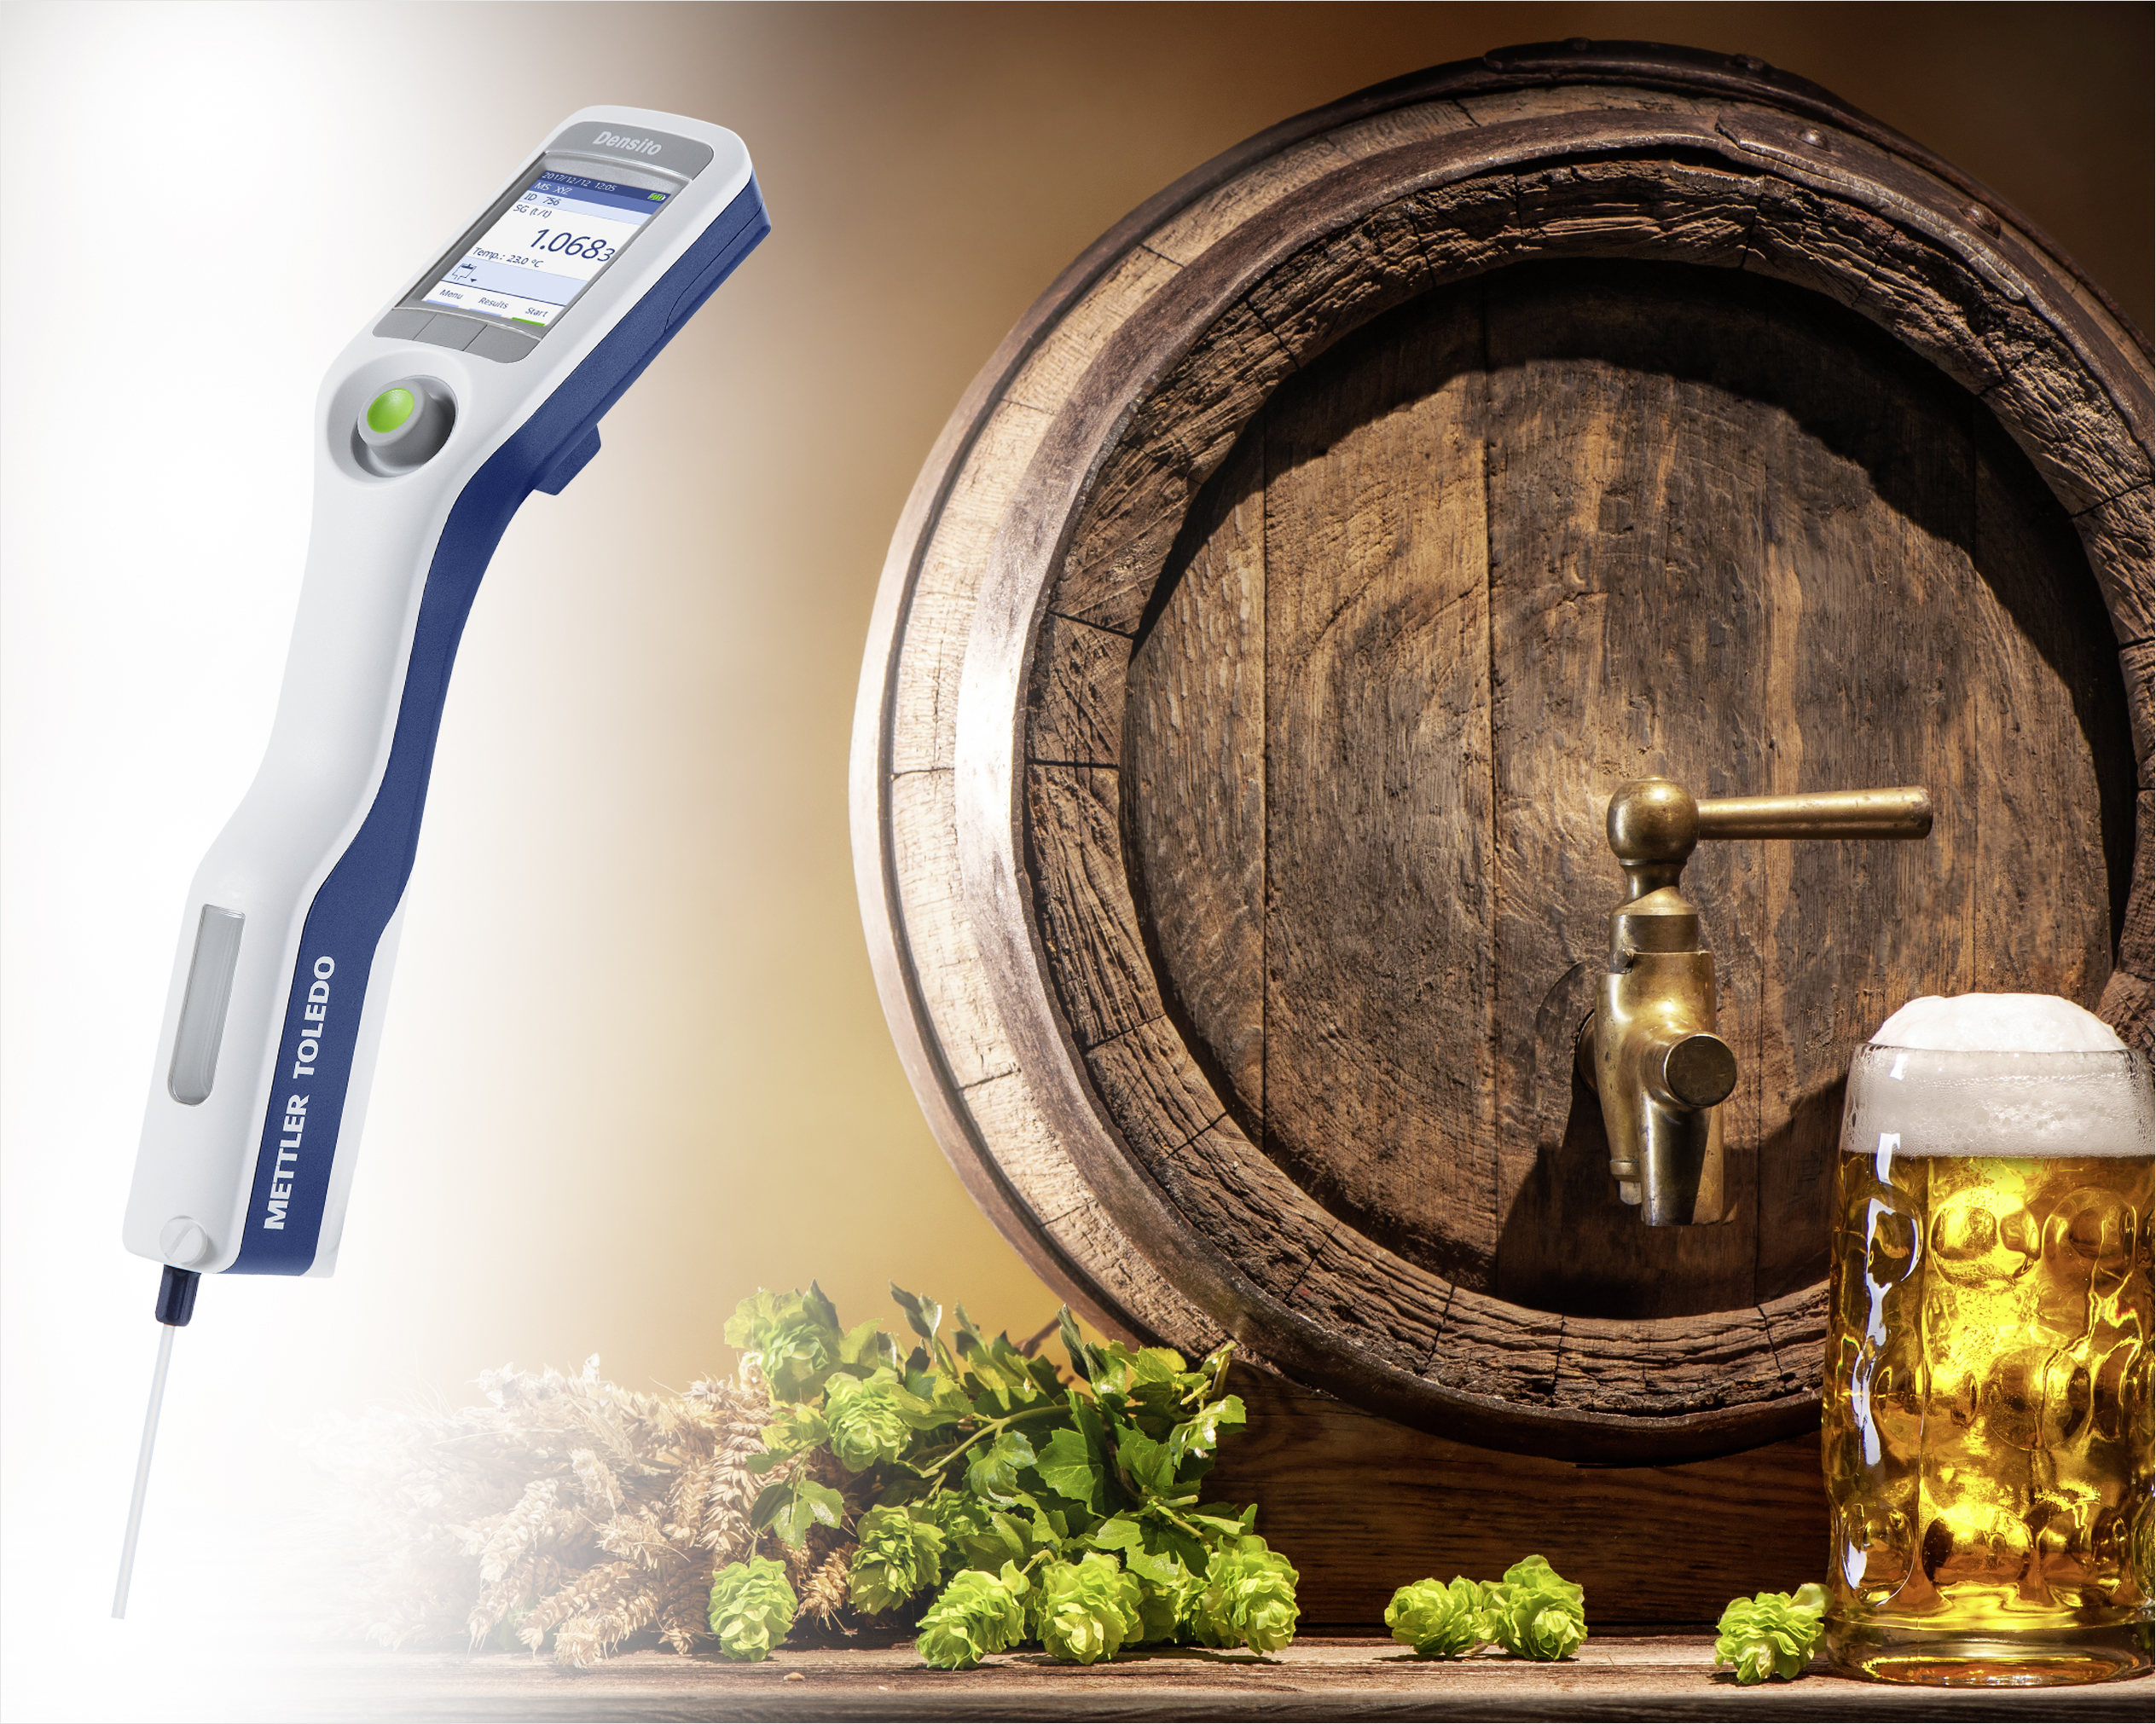 Portable measuring device (Densito) with hop blossoms, barrel and a glass of beer